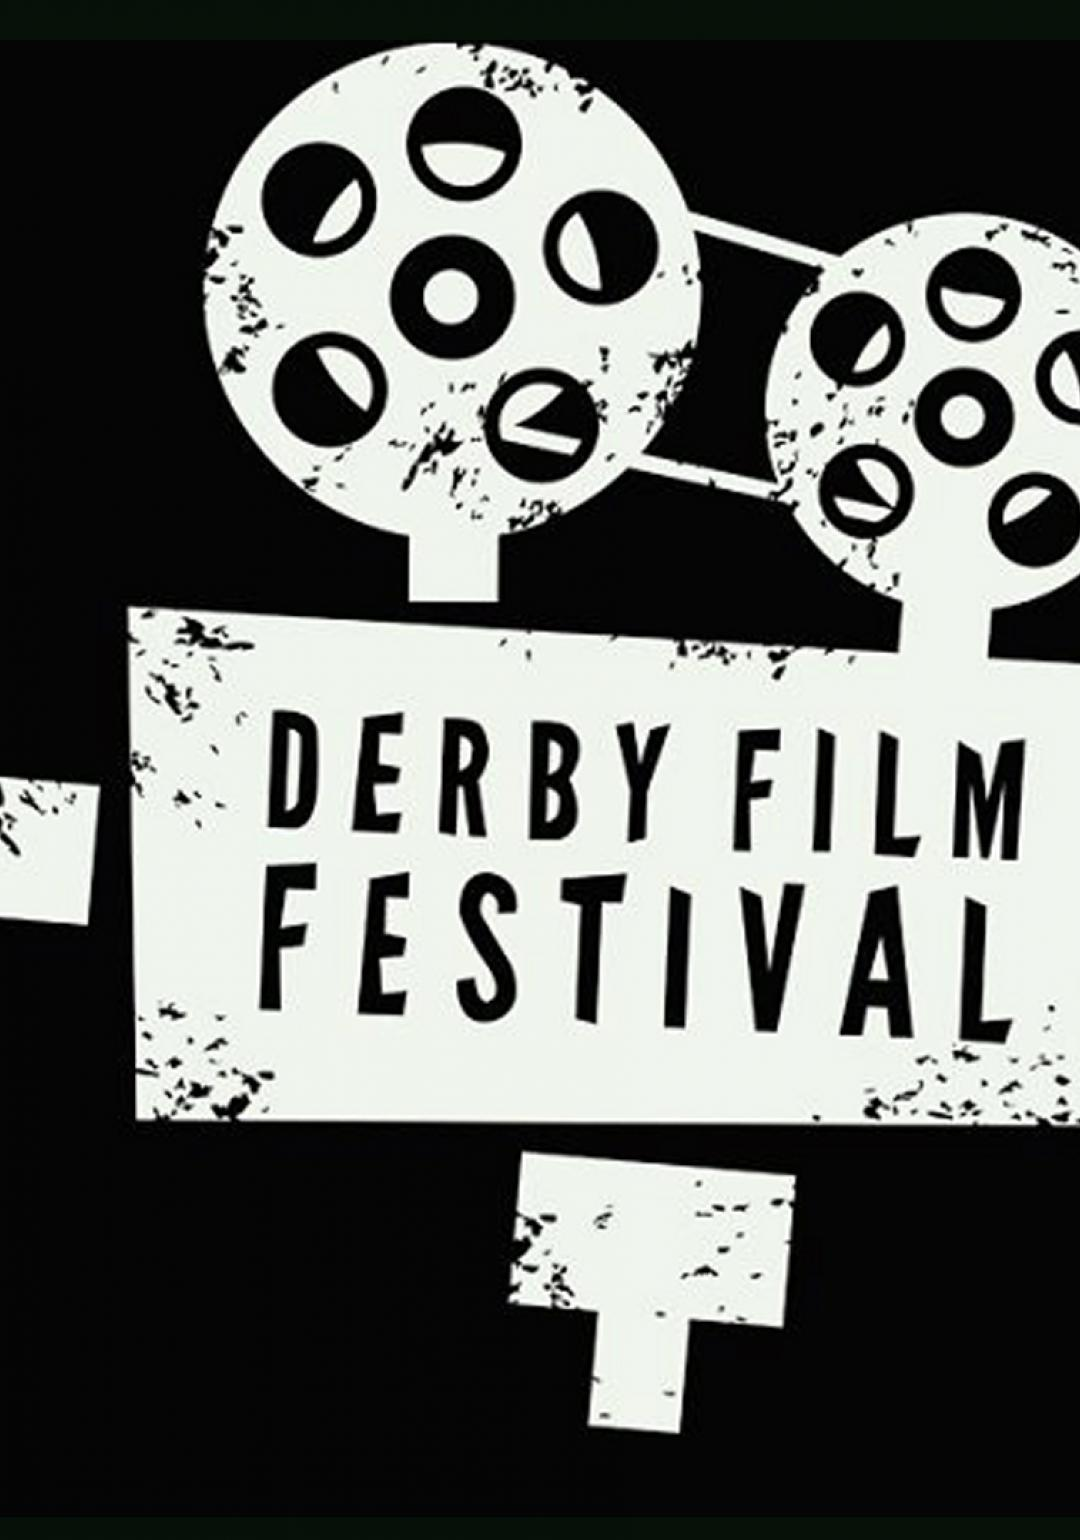 Derby Film Festival: Submit Your Film